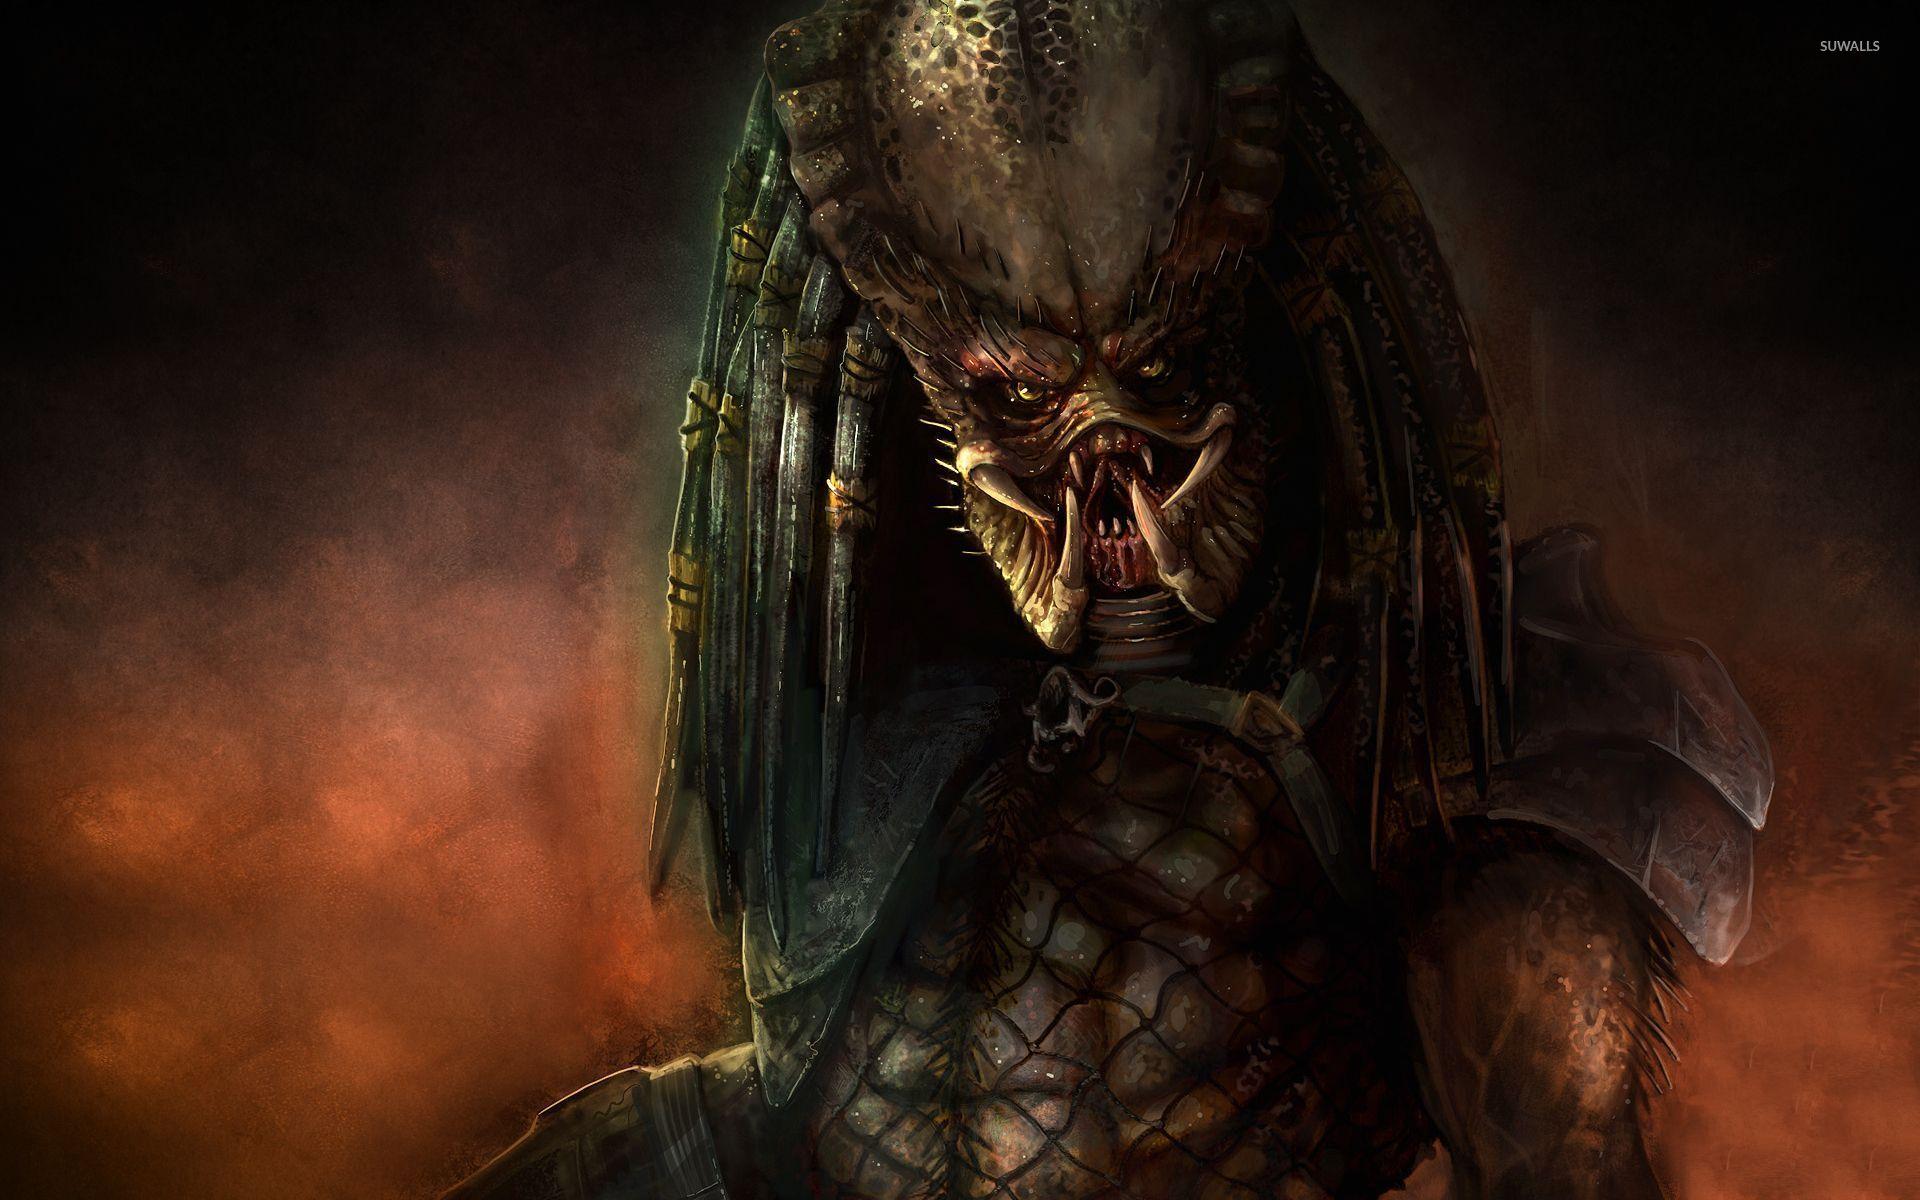 Scary predator wallpaper movie wallpapers 52784 scary predator wallpaper voltagebd Choice Image